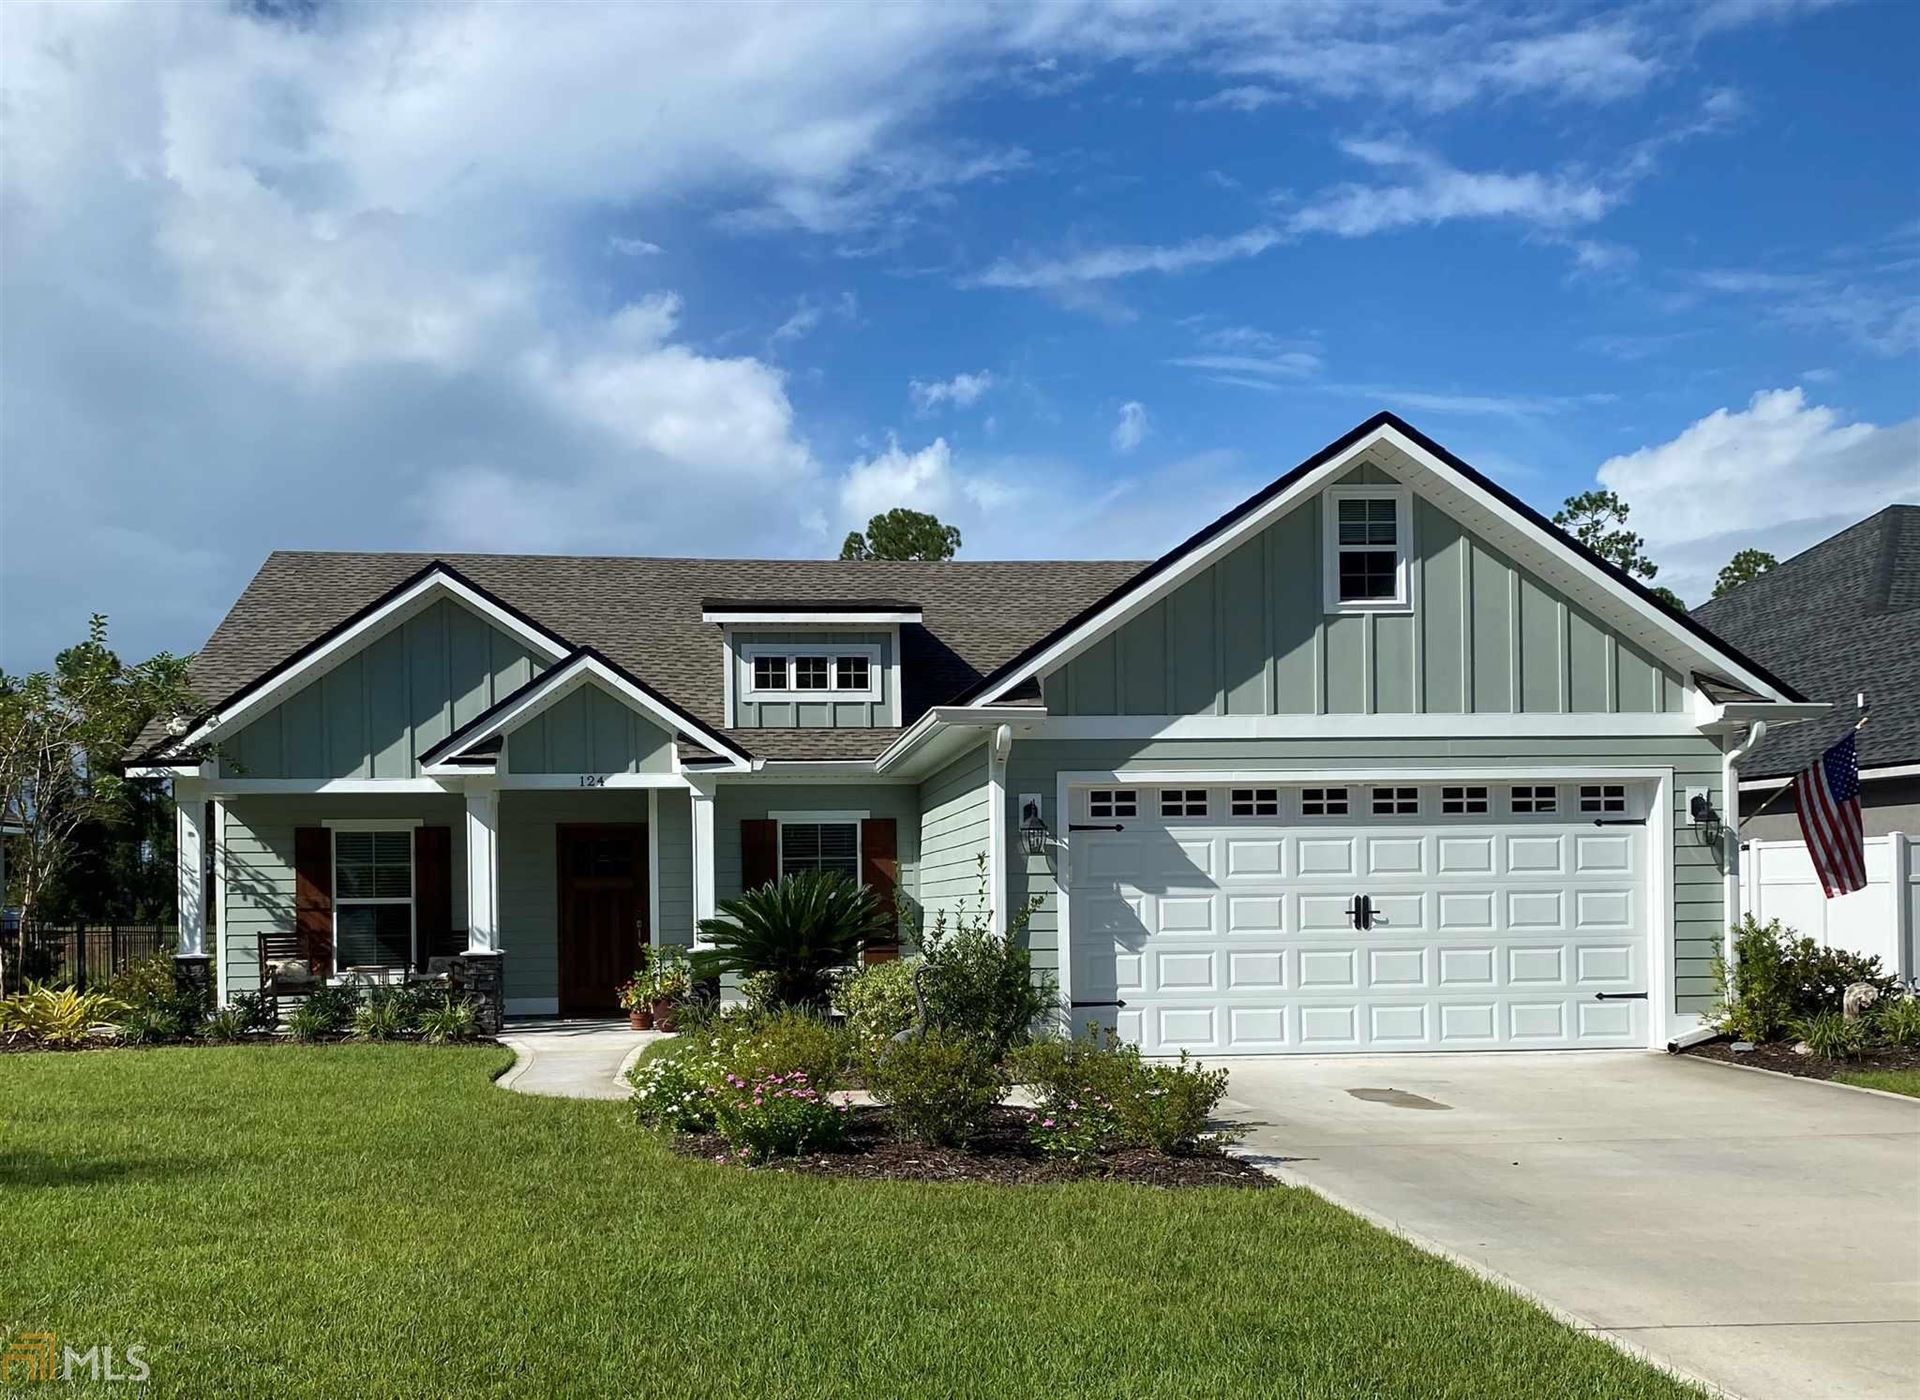 Photo of 124 Boatsman Way, St. Marys, GA 31558 (MLS # 8849809)